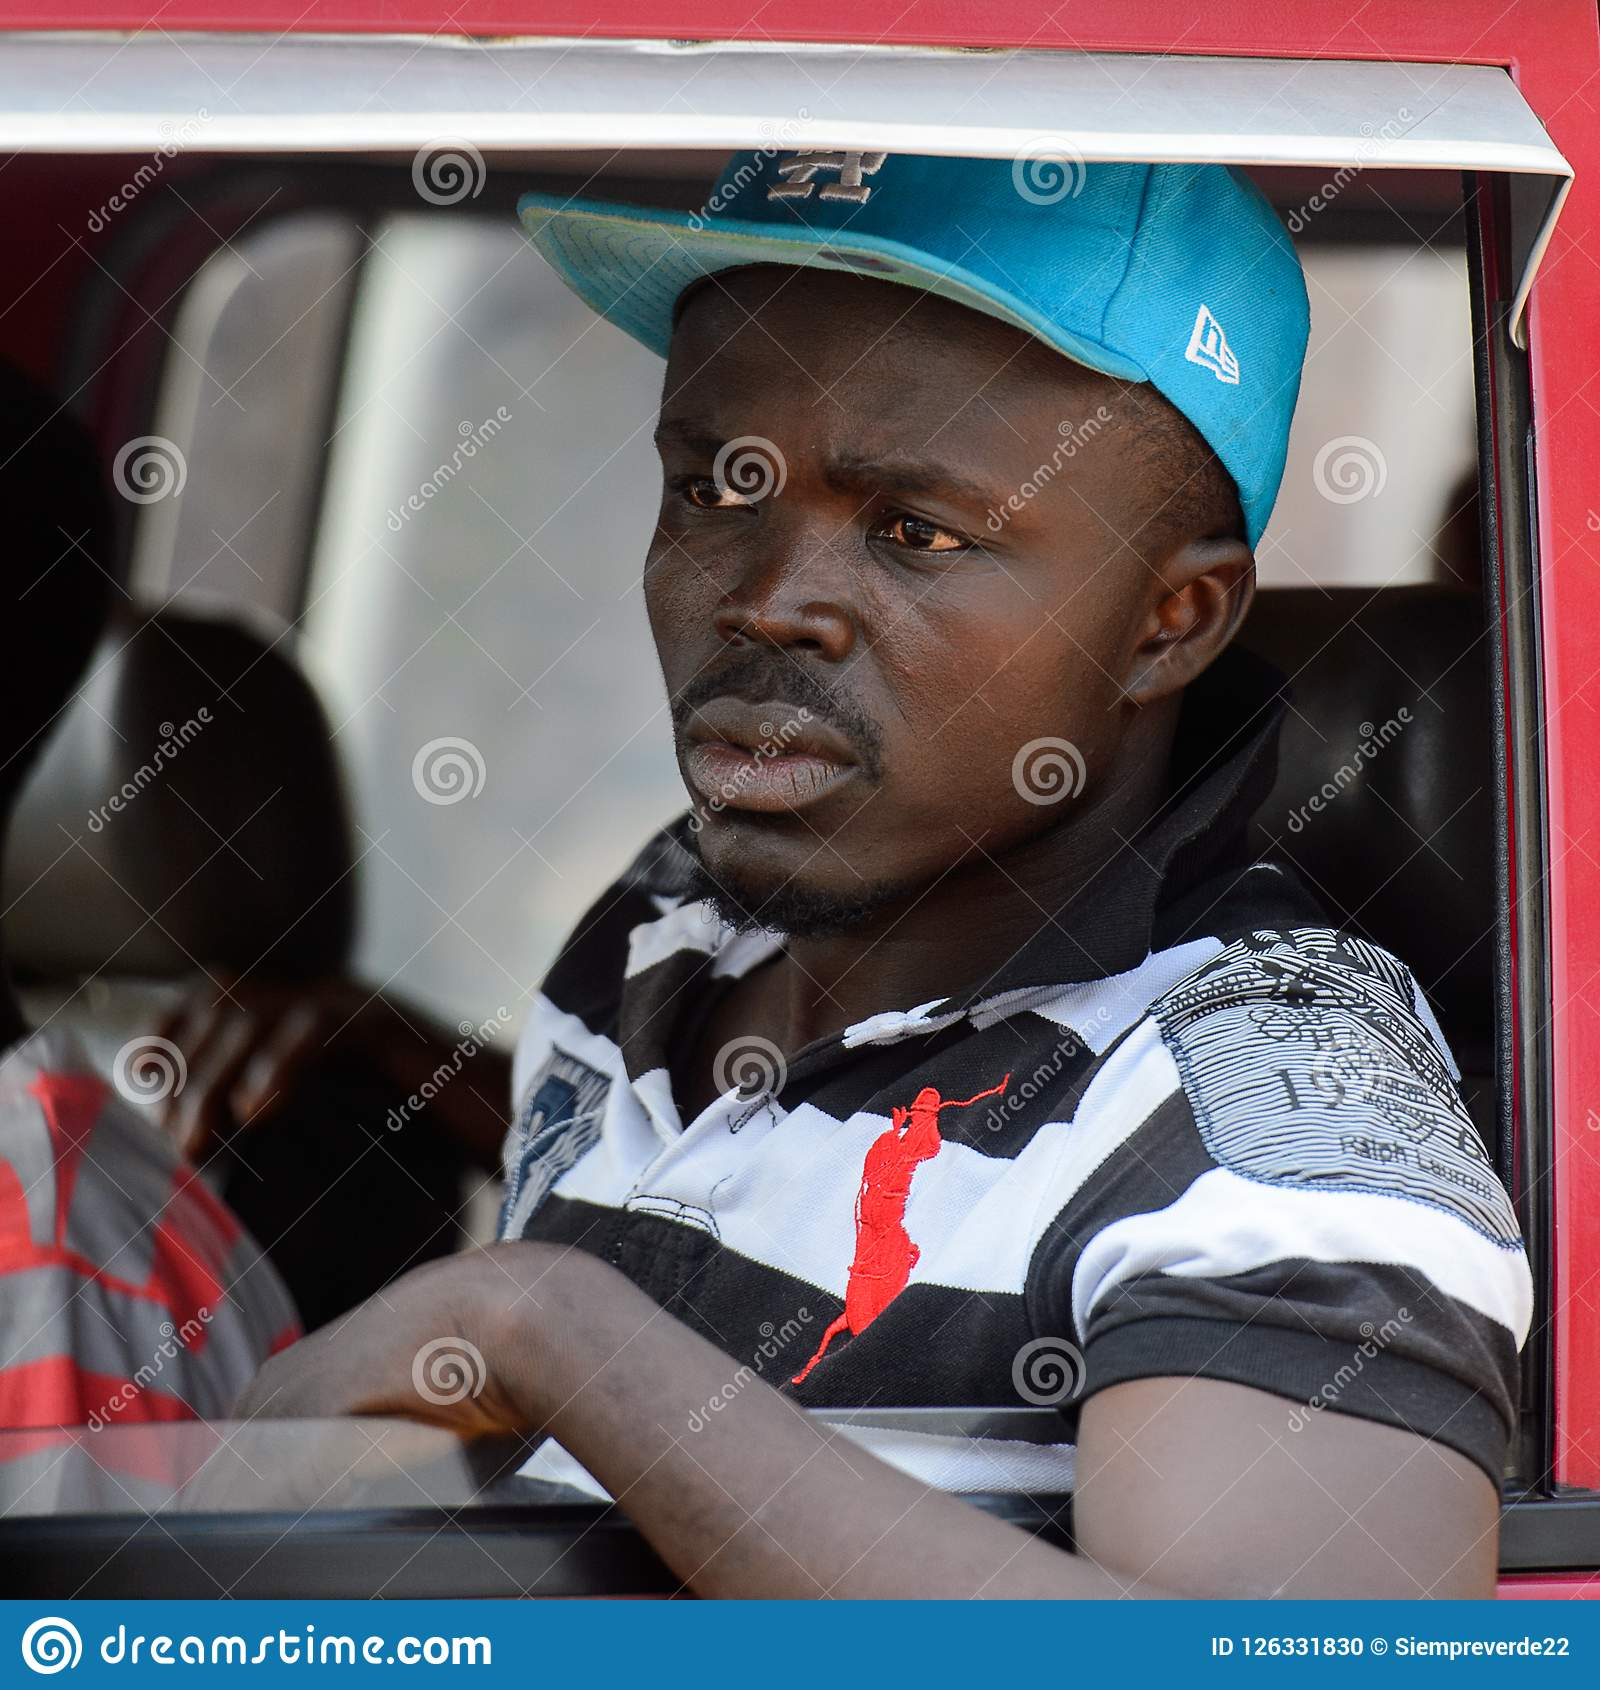 Unidentified Ghanaian man looks out of the red car s window in